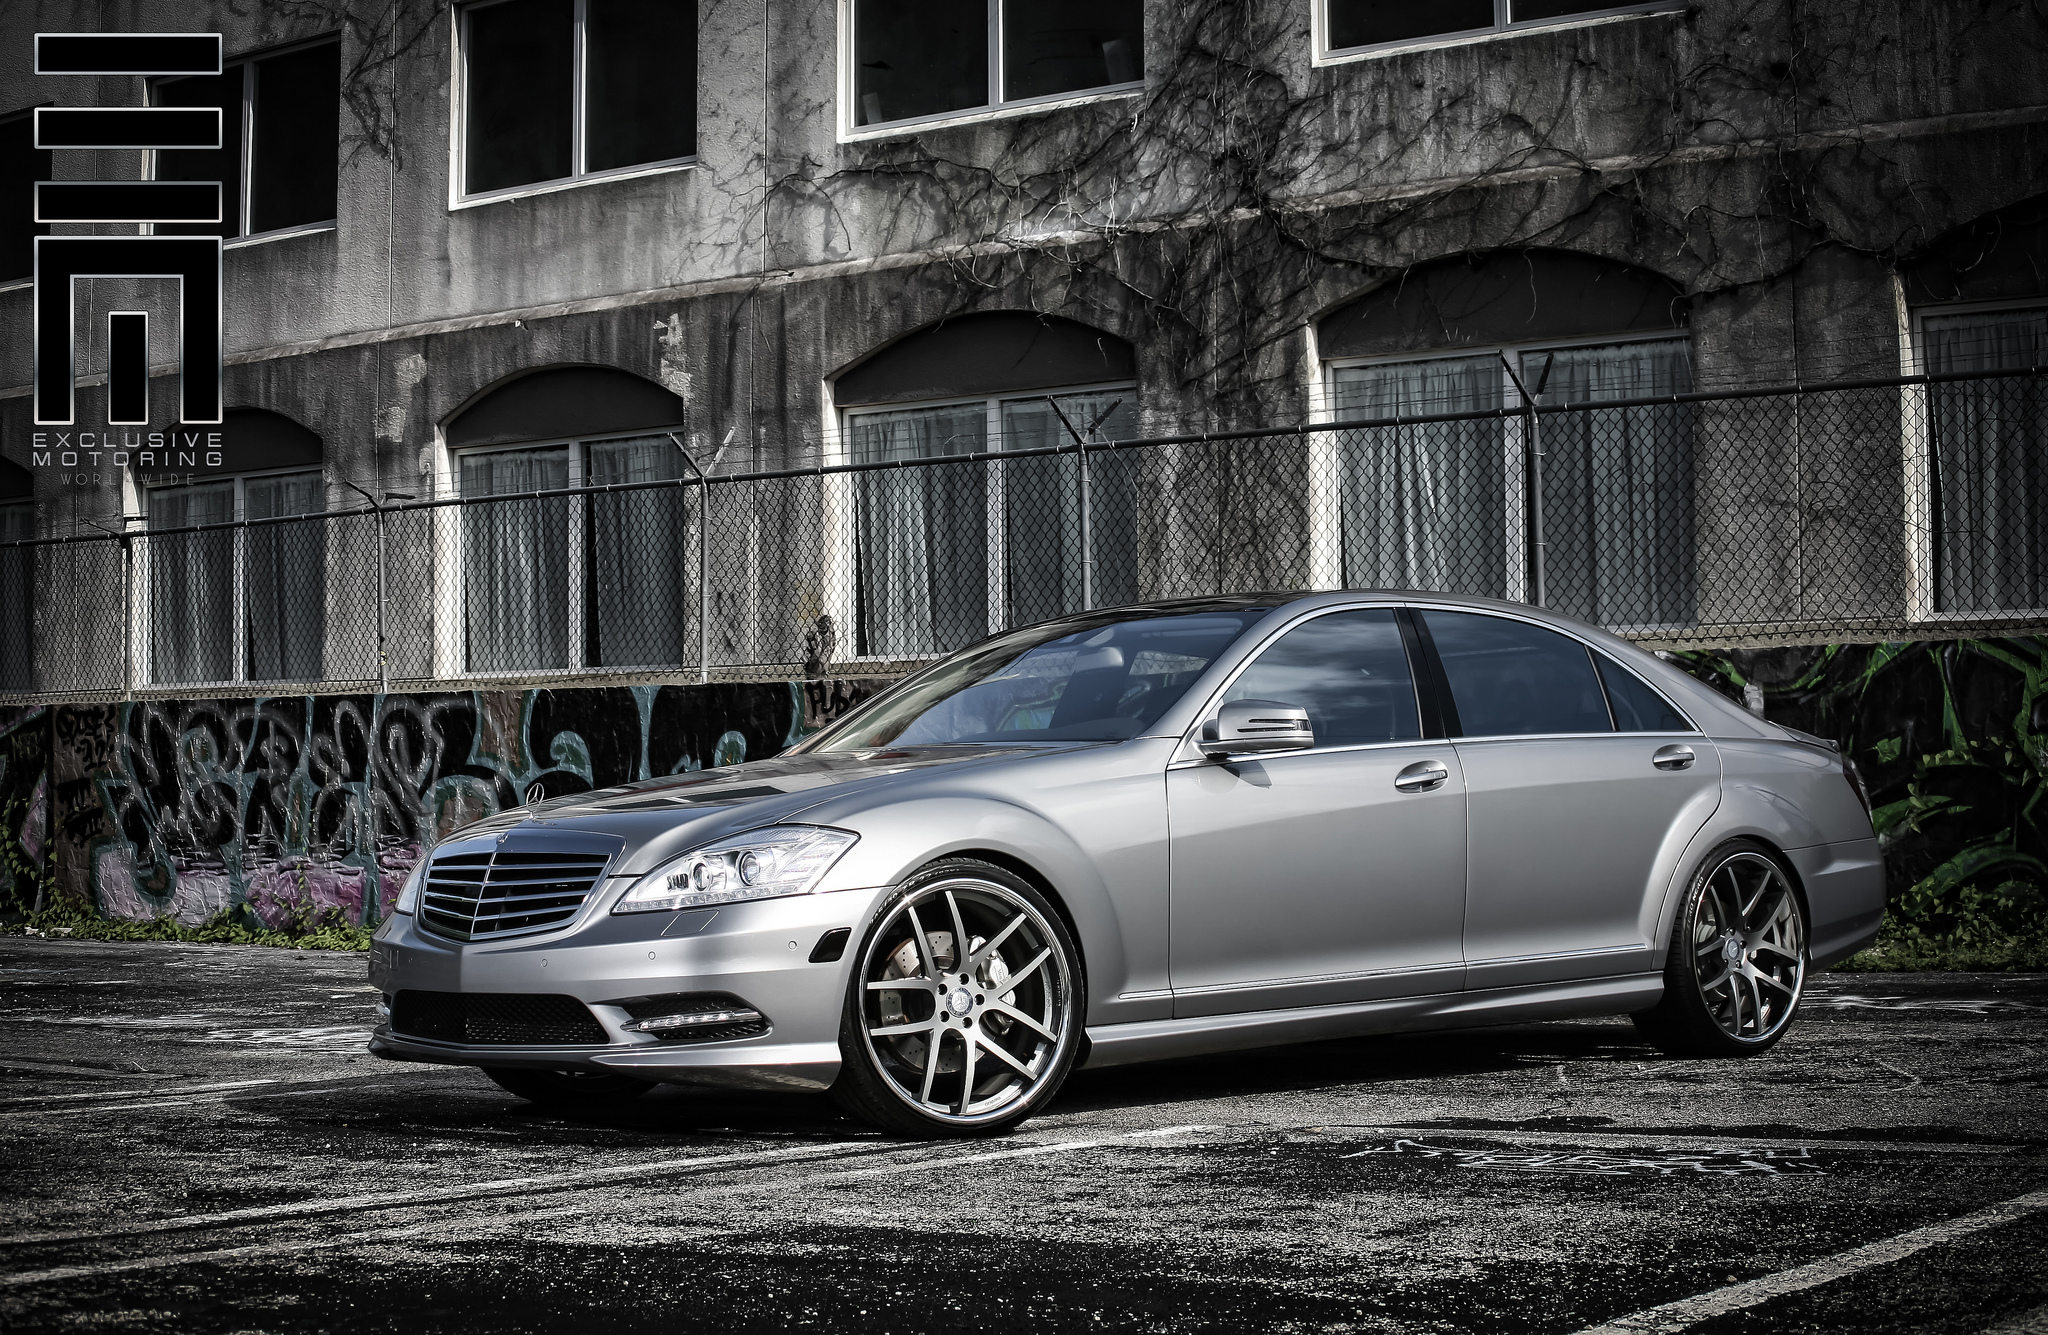 Giovanna Monza r22 Custom Painted on Mercedes Benz S class W221